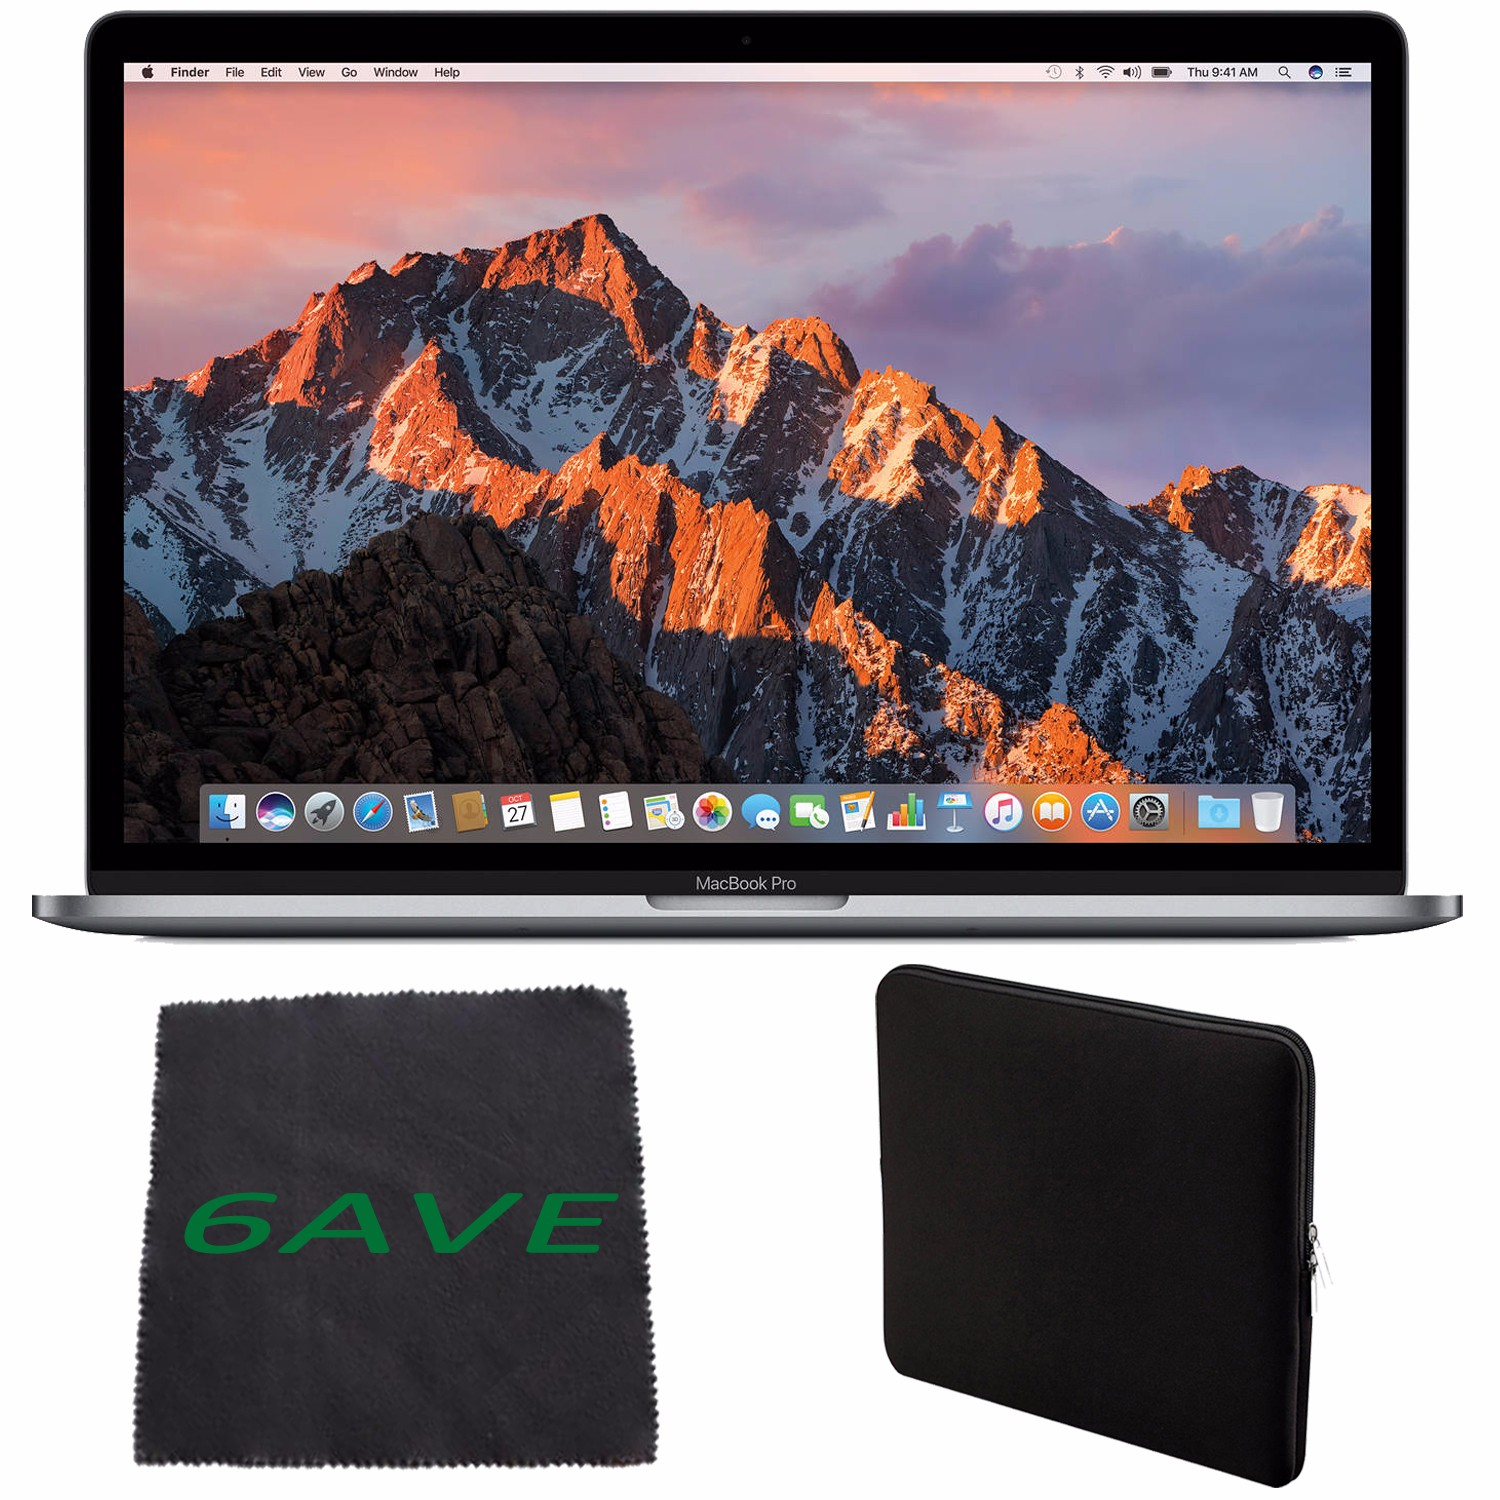 Apple MacBook Pro MLH32LL/A 15.4-inch Laptop with Touch Bar (2.6GHz quad-core Intel Core i7, 256GB Retina Display), Space Gray + Padded Case For Macbook + MicroFiber Cloth Bundle